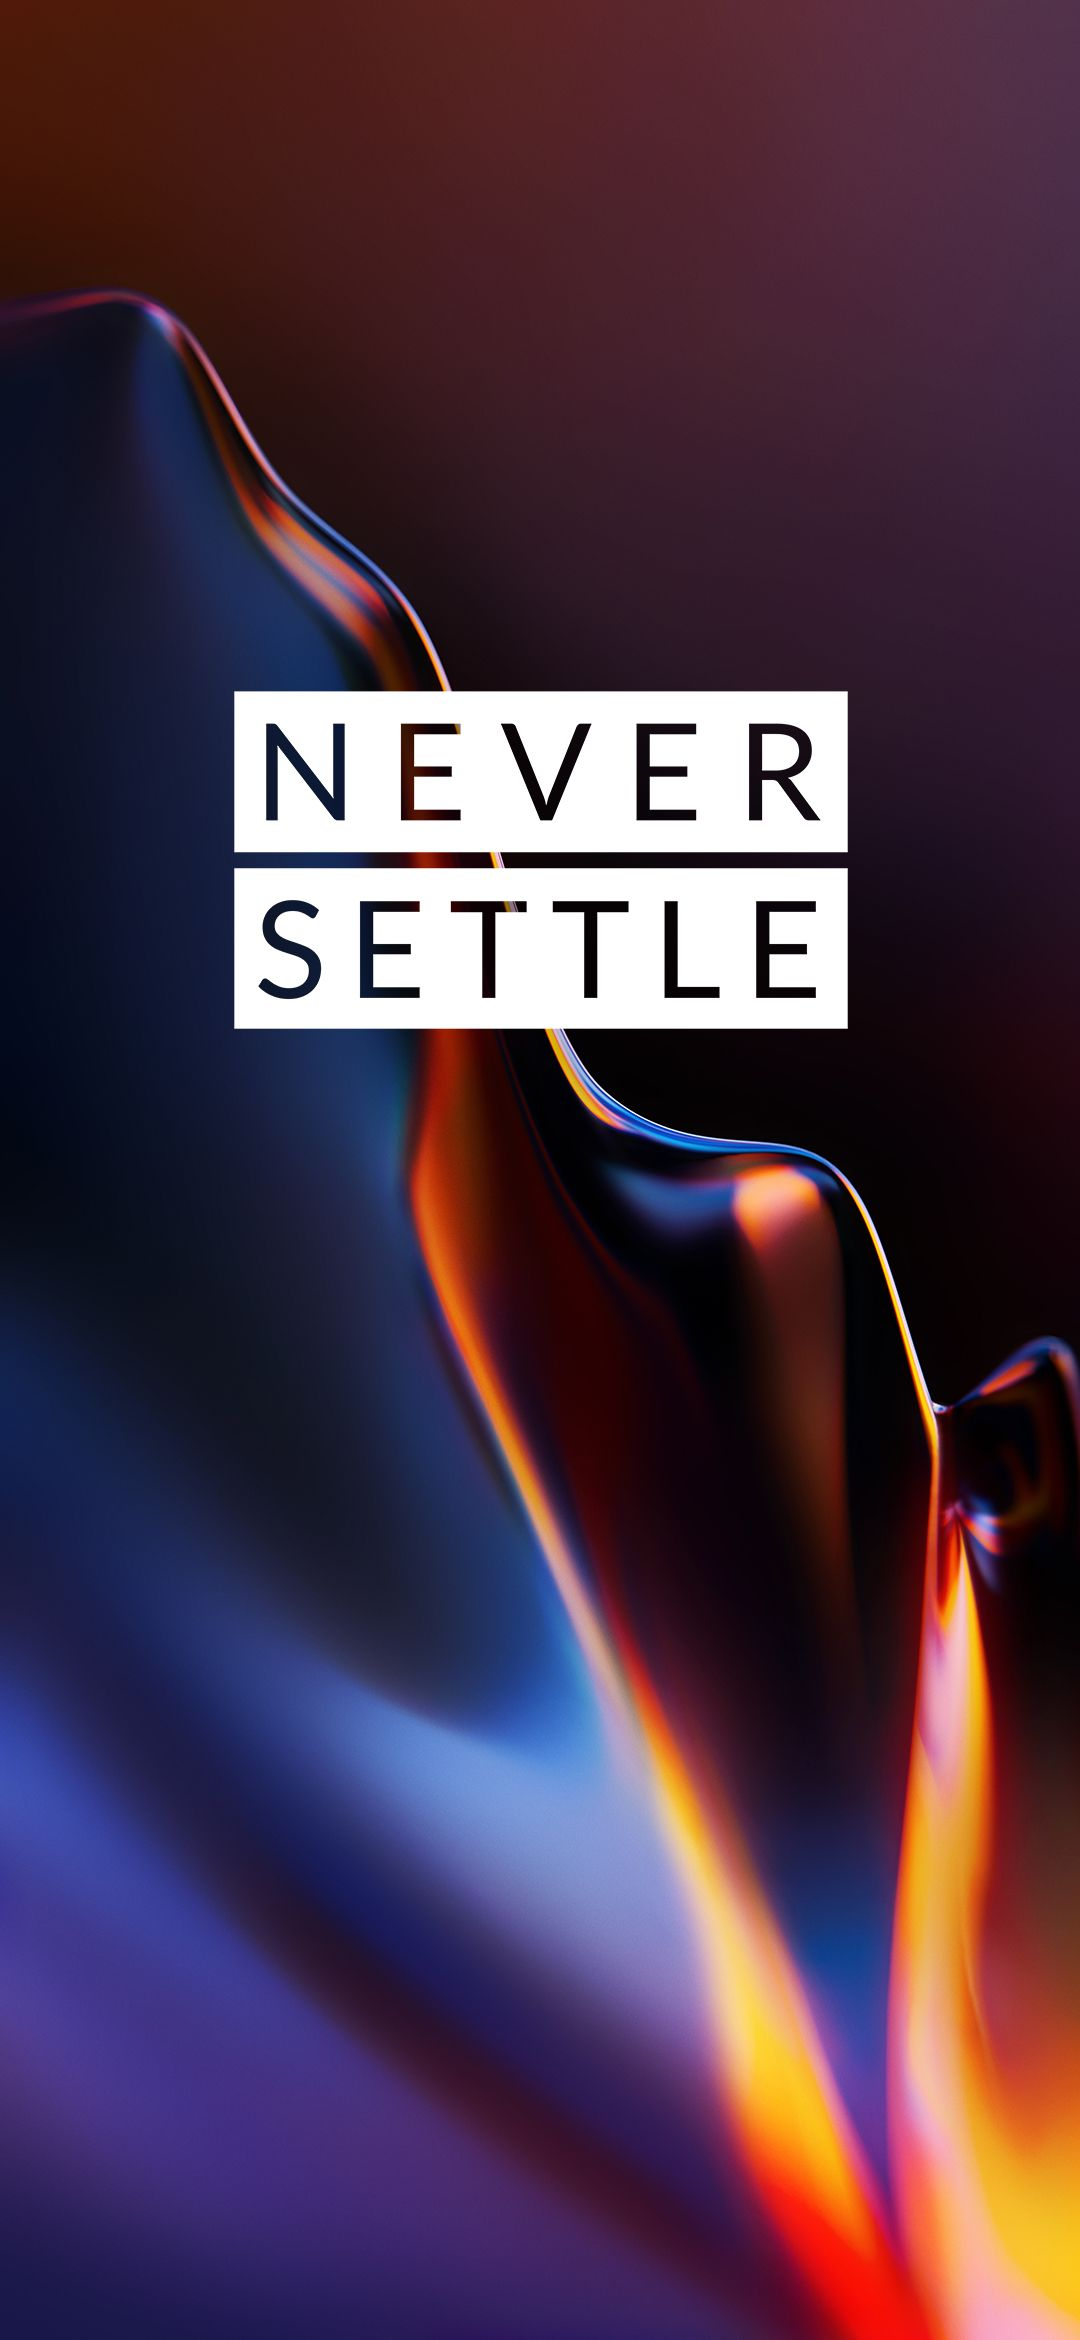 Oneplus 6t Wallpapers Top Free Oneplus 6t Backgrounds Wallpaperaccess